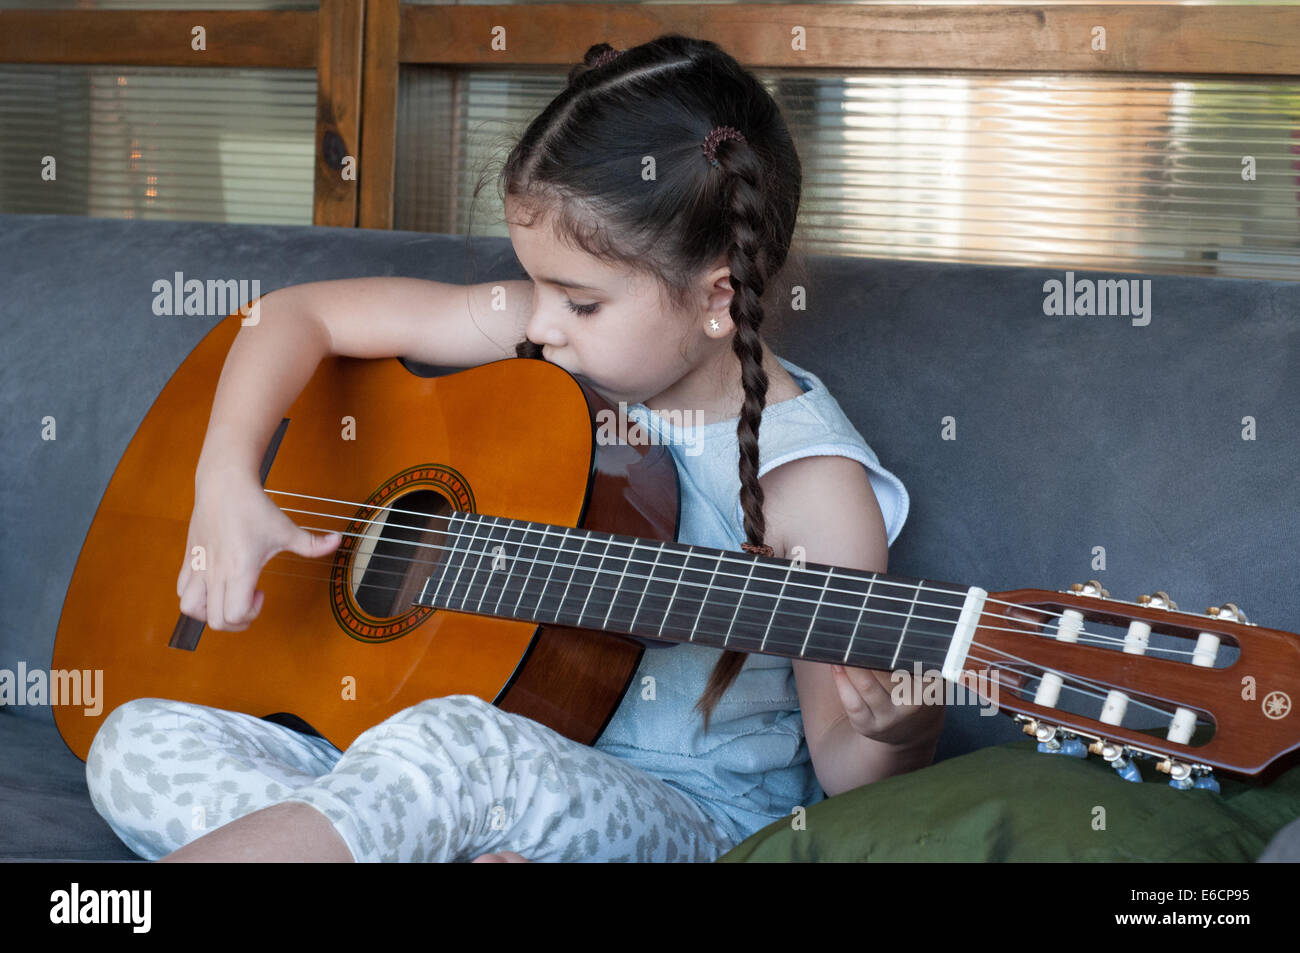 child playing guitar stock photos child playing guitar stock images alamy. Black Bedroom Furniture Sets. Home Design Ideas